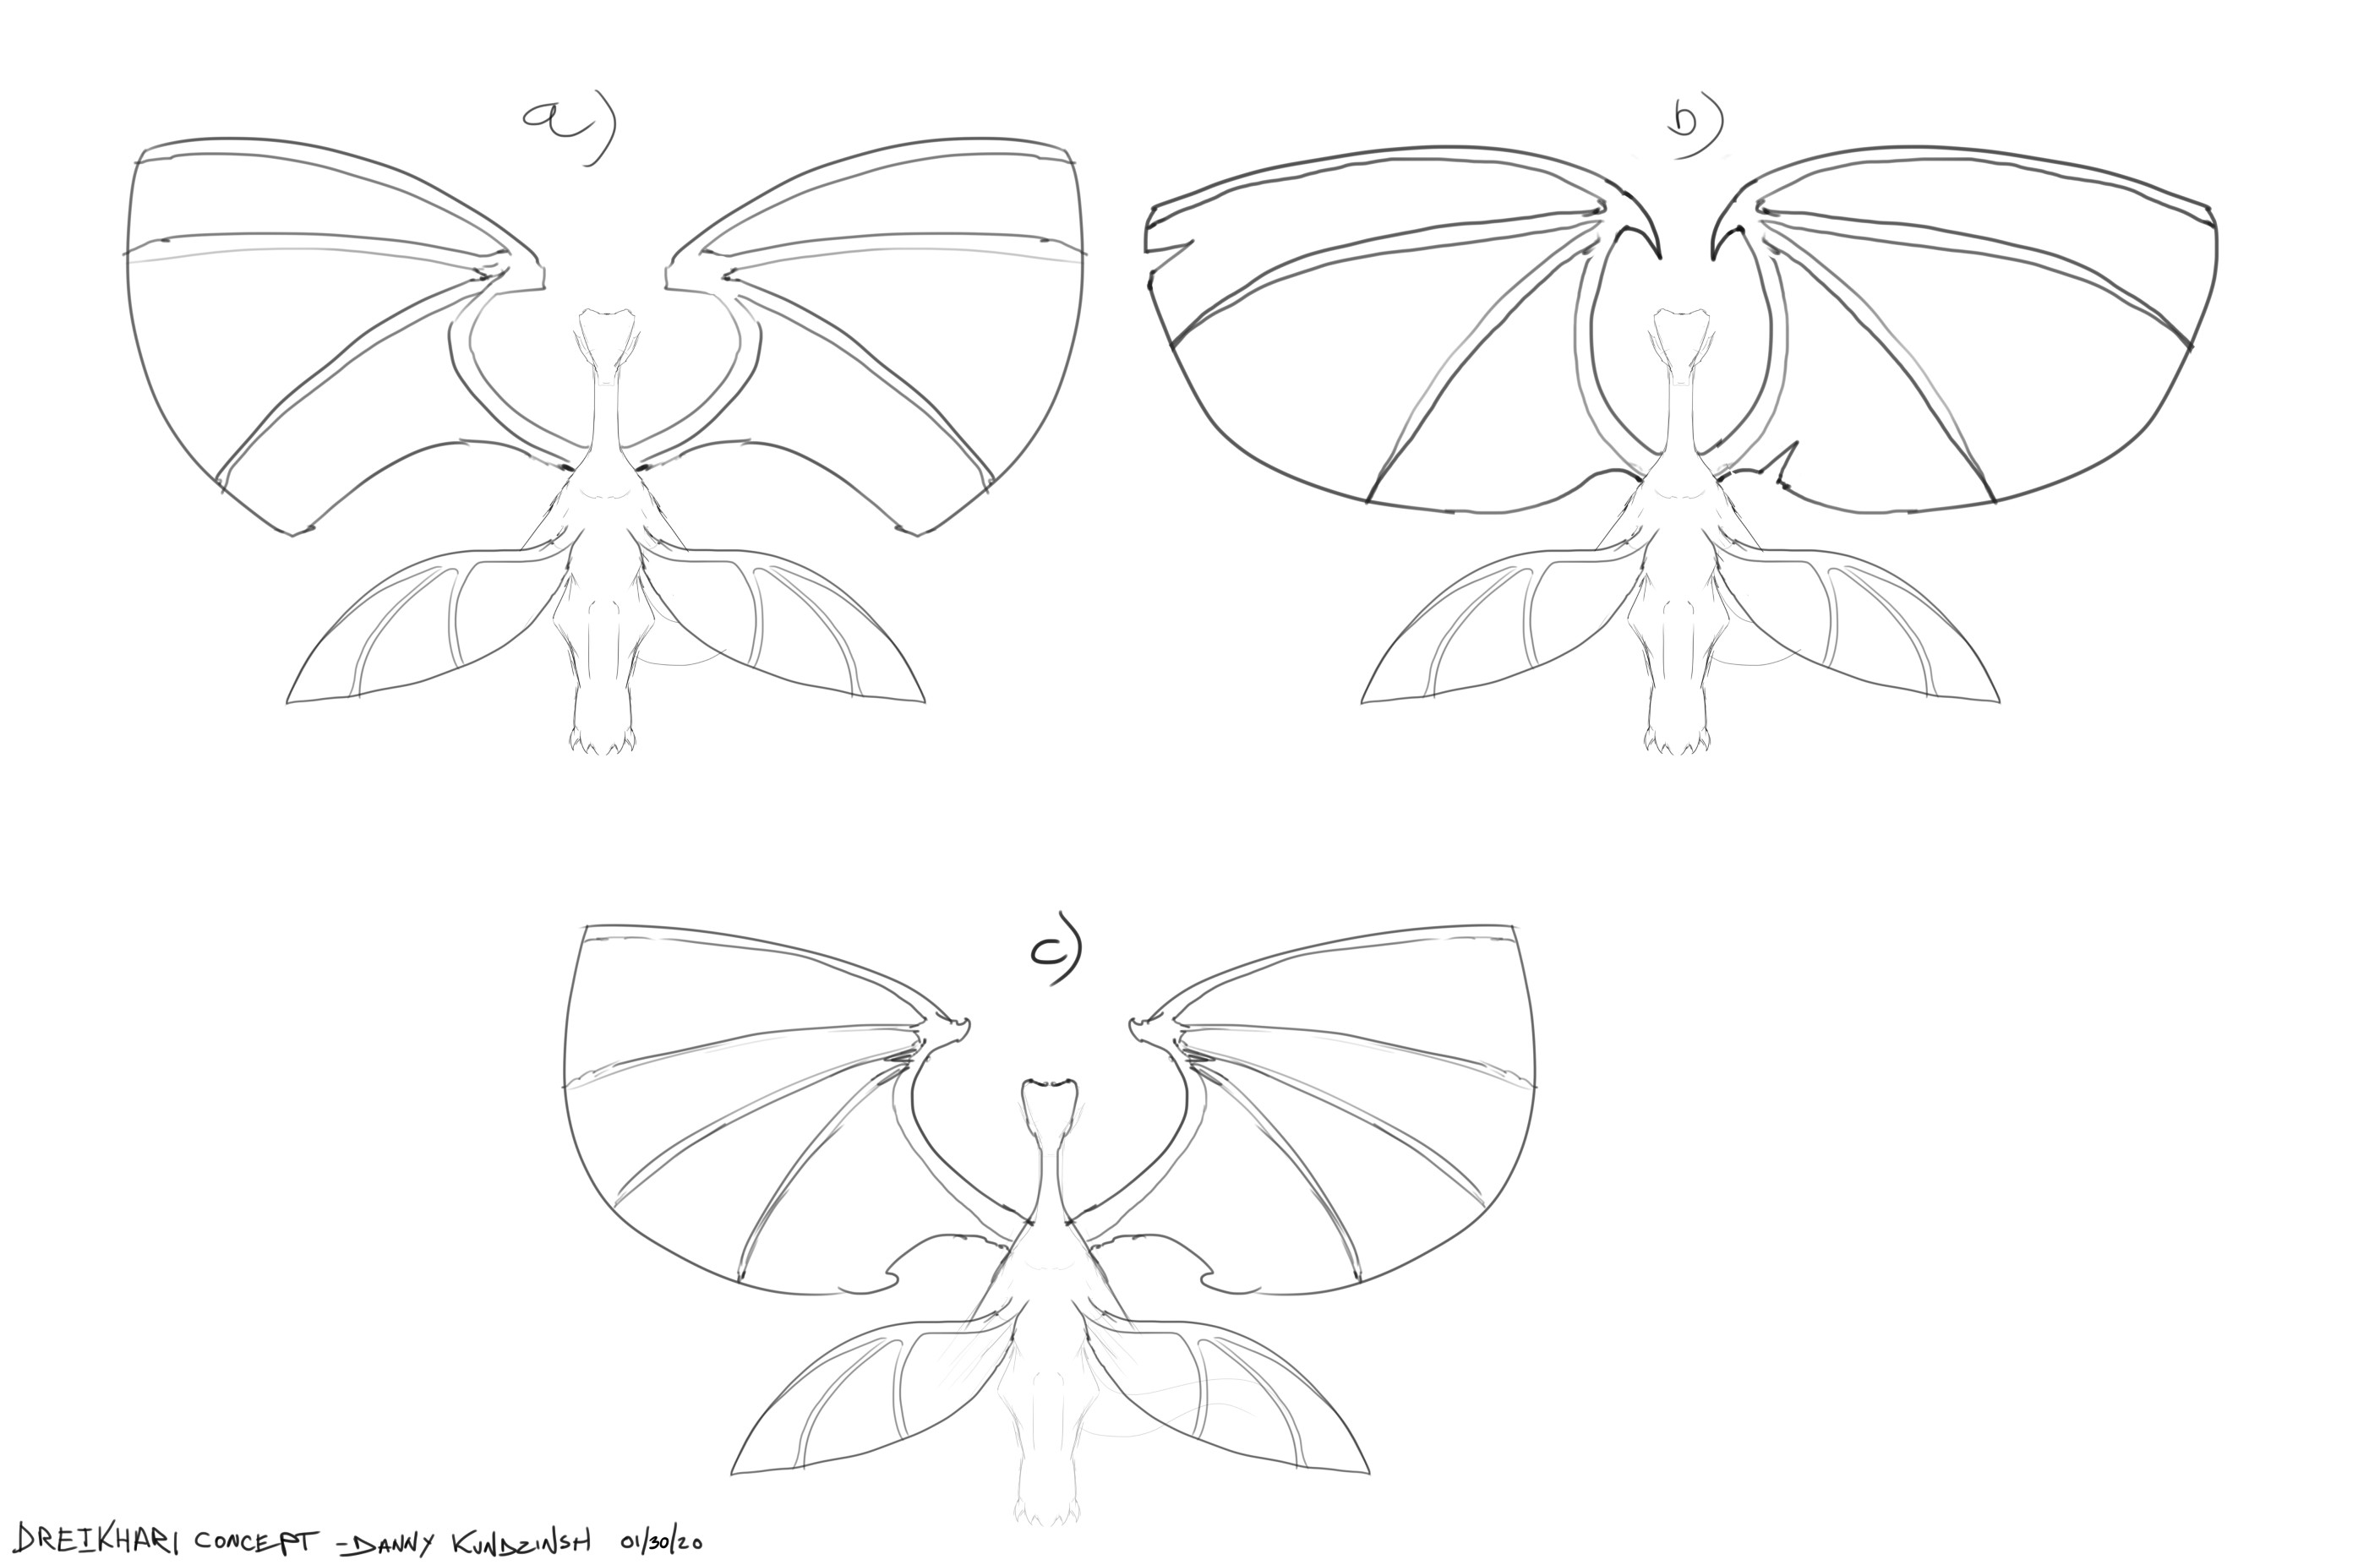 Silhouette and wing variations